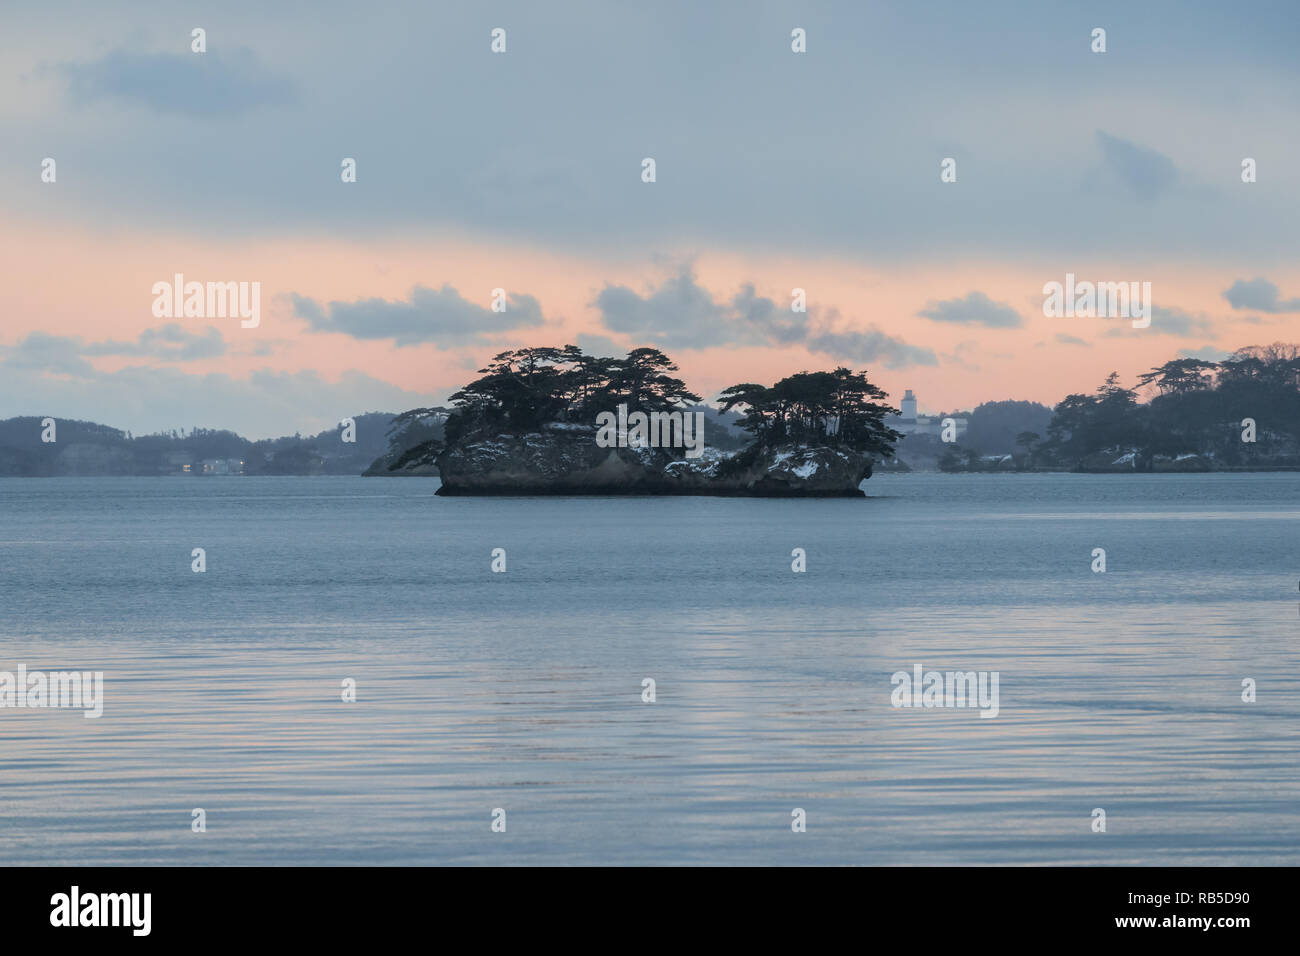 Matsushima Bay dans la région de Tohoku, Japon Photo Stock